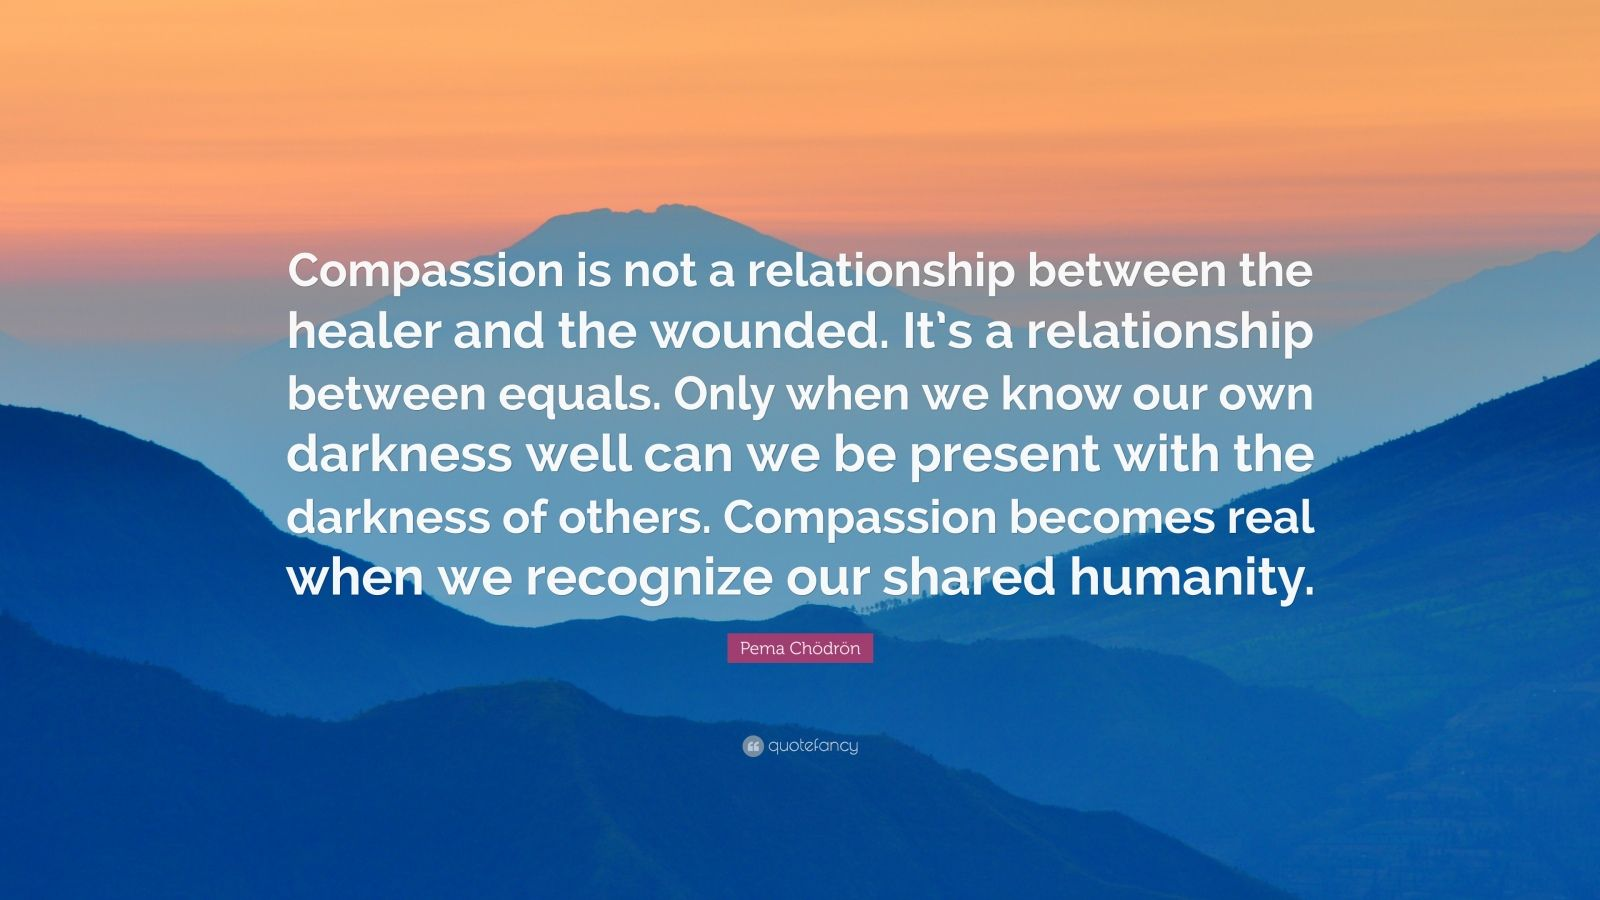 "Pema Chödrön Quote: ""Compassion is not a relationship between the healer and the wounded. It's a relationship between equals. Only when we know our own darkness well can we be present with the darkness of others. Compassion becomes real when we recognize our shared humanity."""